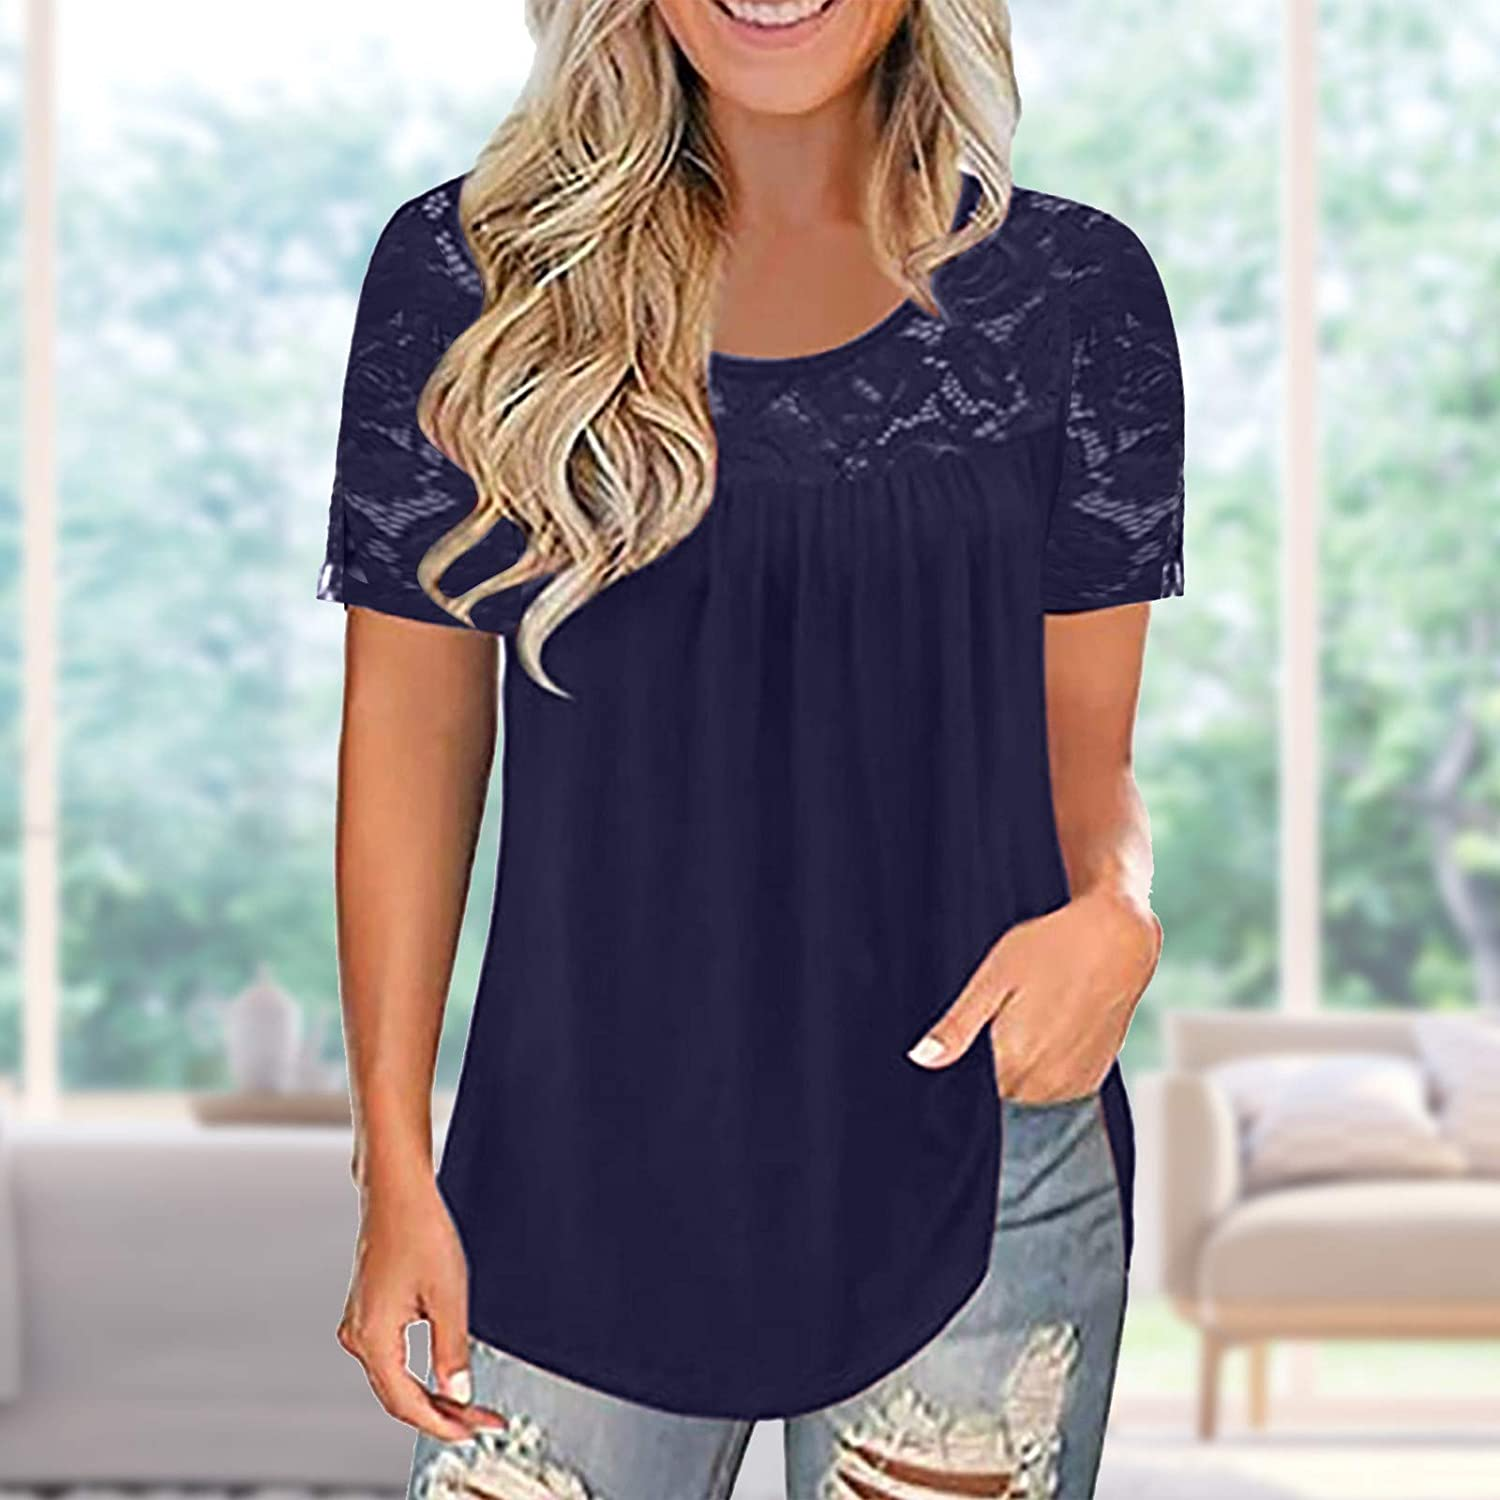 Workout Tops for Women,Tunics for Women to Wear with Leggings Short Sleeve Flowy Shirts Dandelion Cat Elephant Print Tops Plus Size.S-5XL Blue